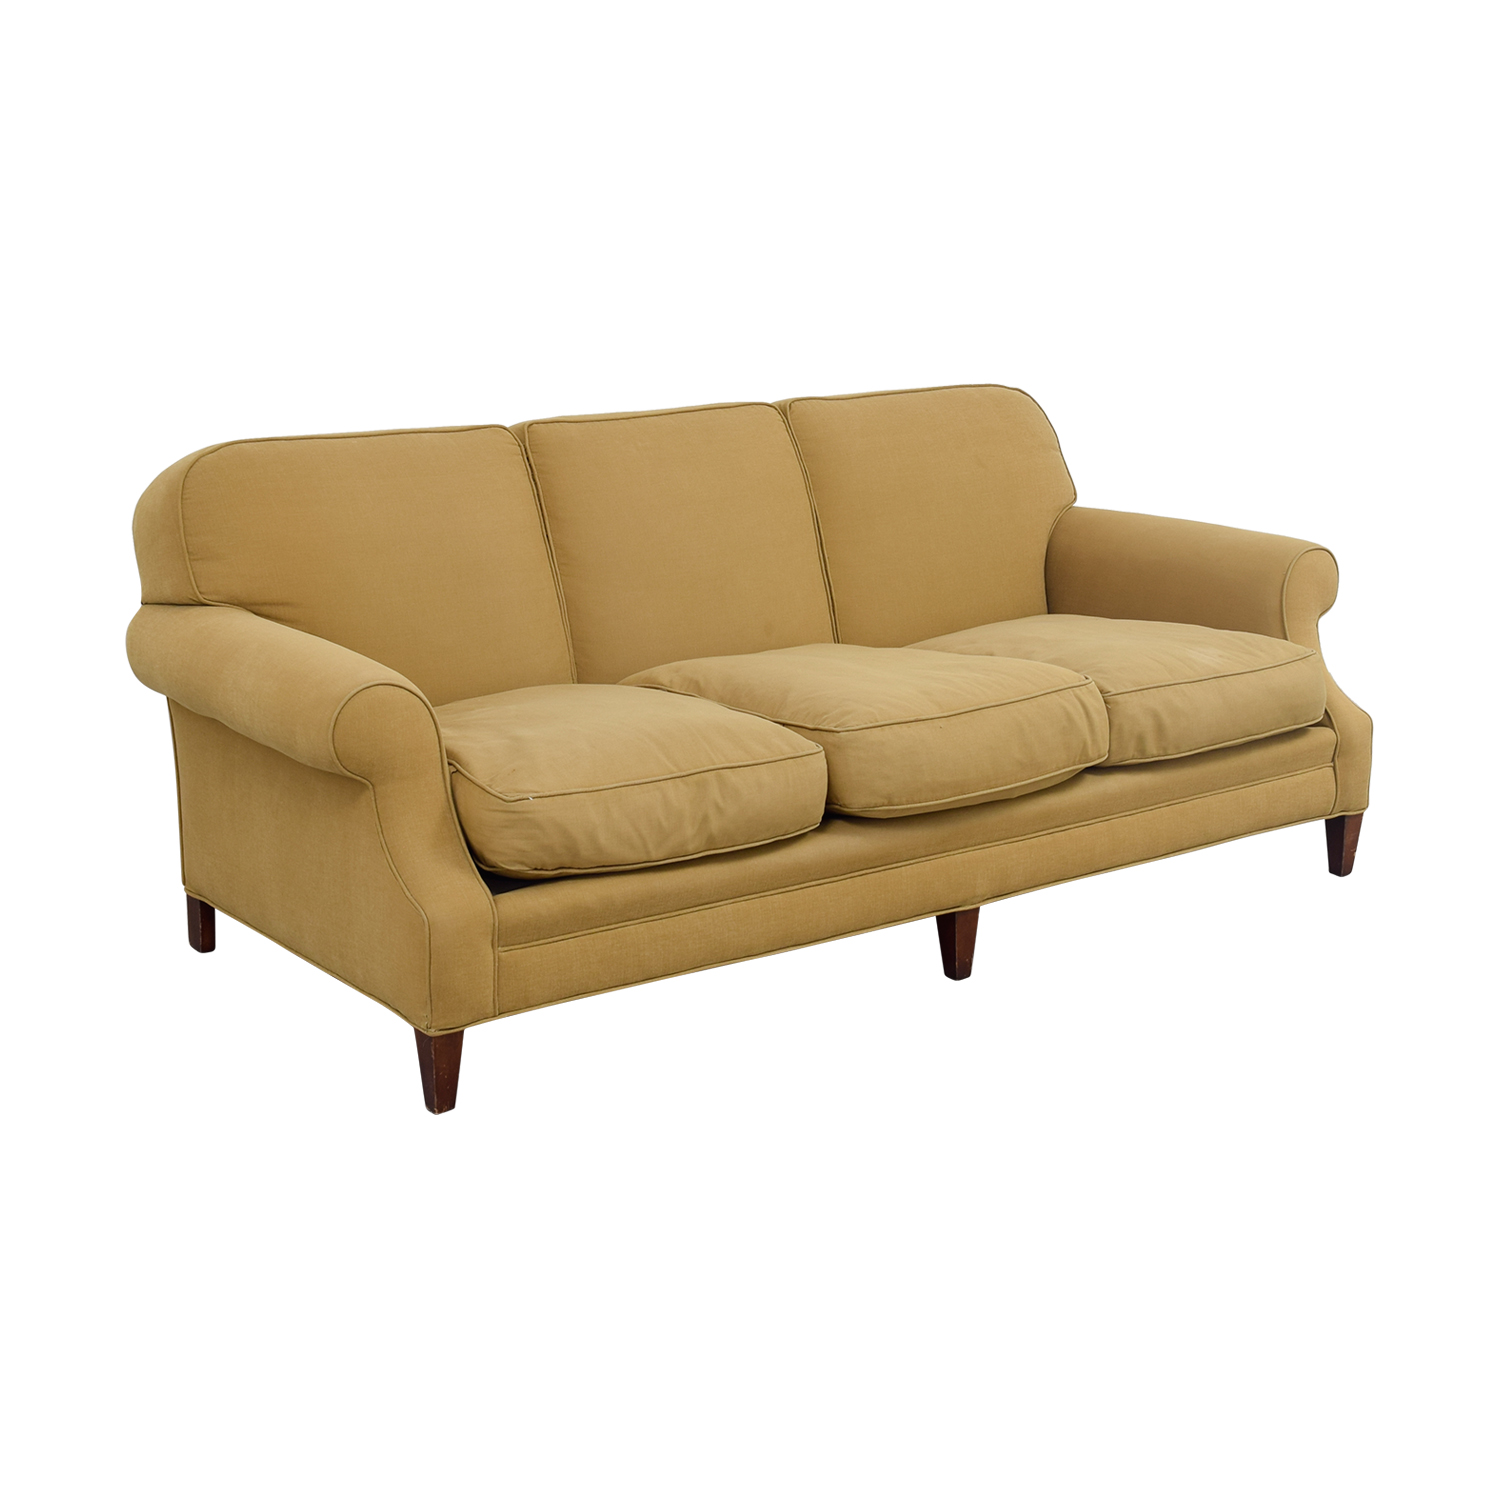 buy Beige Three Cushion Couch Classic Sofas